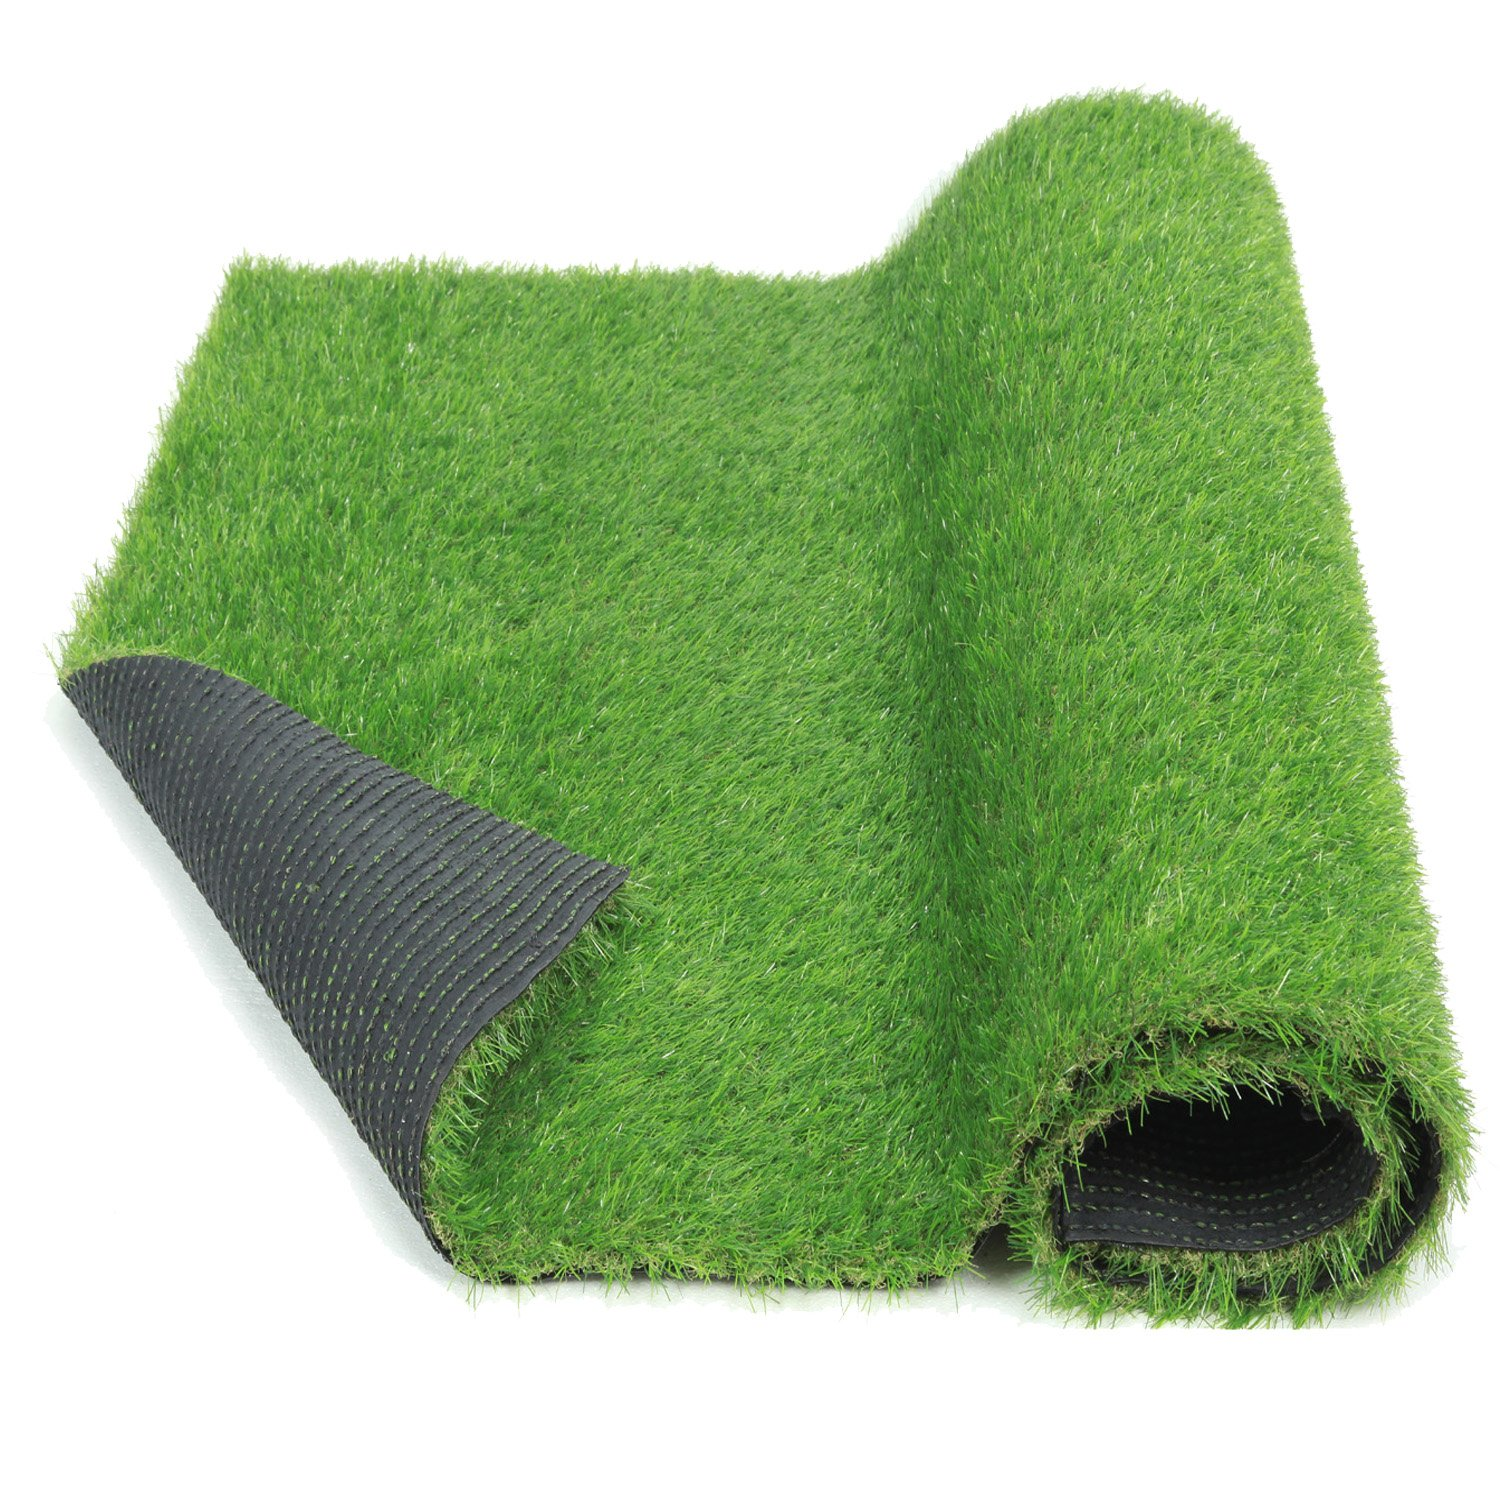 EcoMatrix Fake Grass Rug Artificial Grass Carpet Indoor Outdoor Green Lawn Mats Landscape Synthetic Grass Turf for Pet Dog Area and Decoration(3.3ft x 10ft)